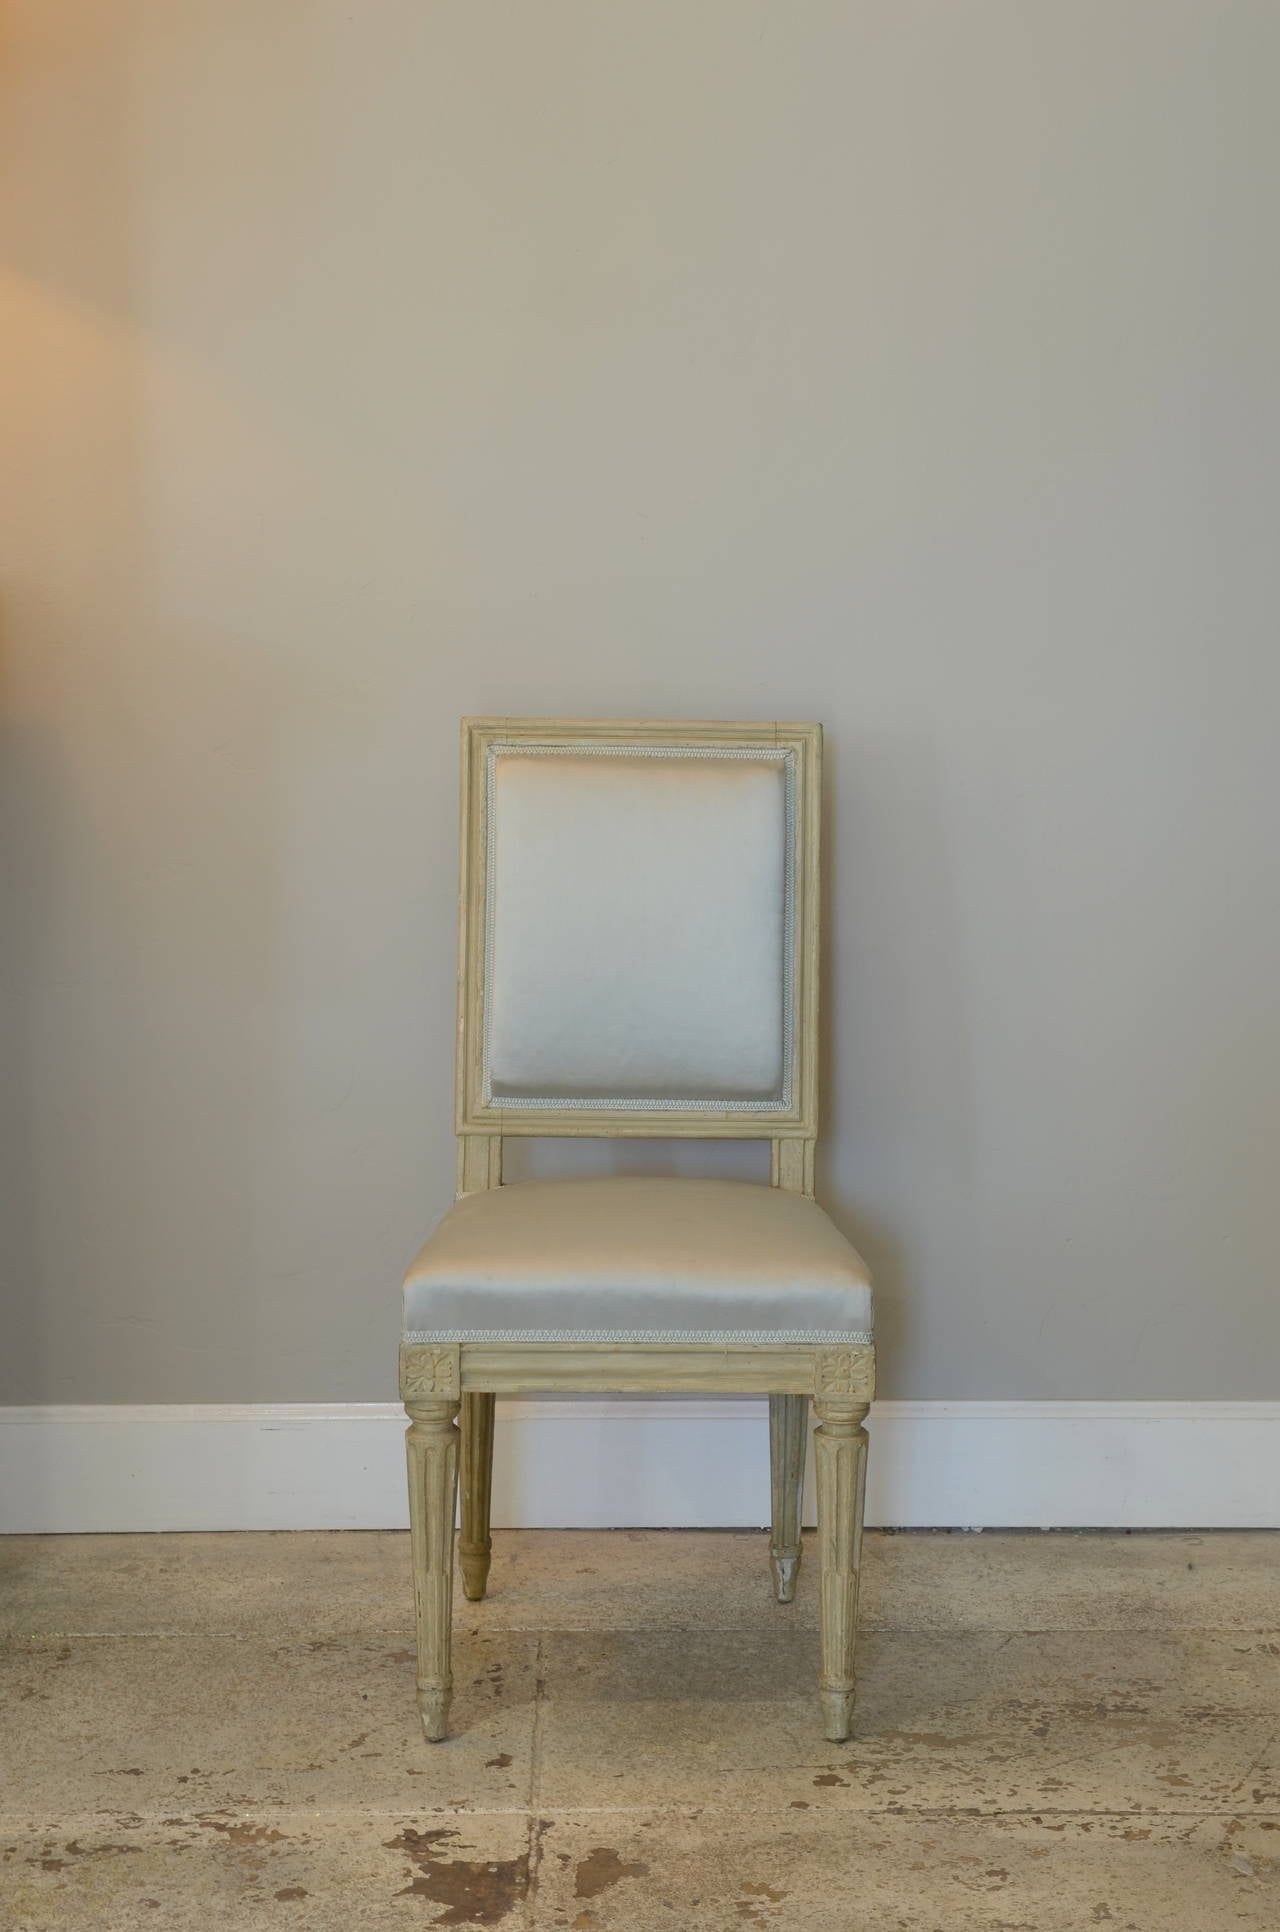 Pair of Chic Louis XVI style side chairs by Armand-Albert Rateau.  Stamped A A RATEAU and numbered.  Armand-Albert Rateau (1882 - 1938) was a French furniture maker and interior designer. In 2006, The Grove Encyclopedia of Decorative Arts